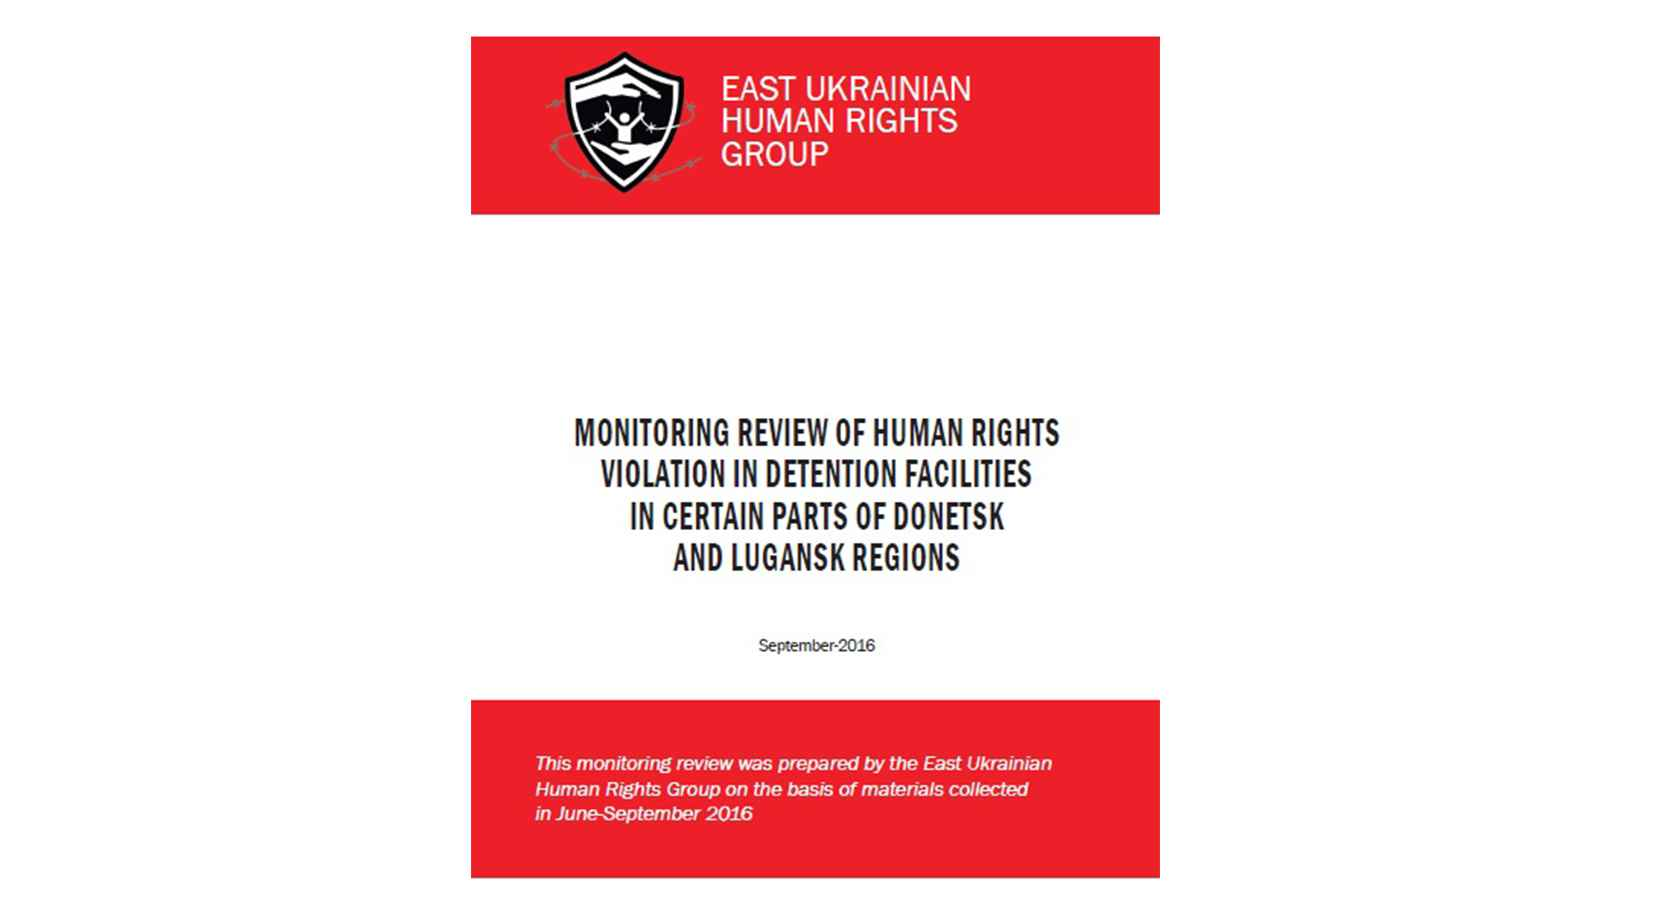 Monitoring review of human rights violation in detention facilities in certain parts of Donetsk and Lugansk regions. Download